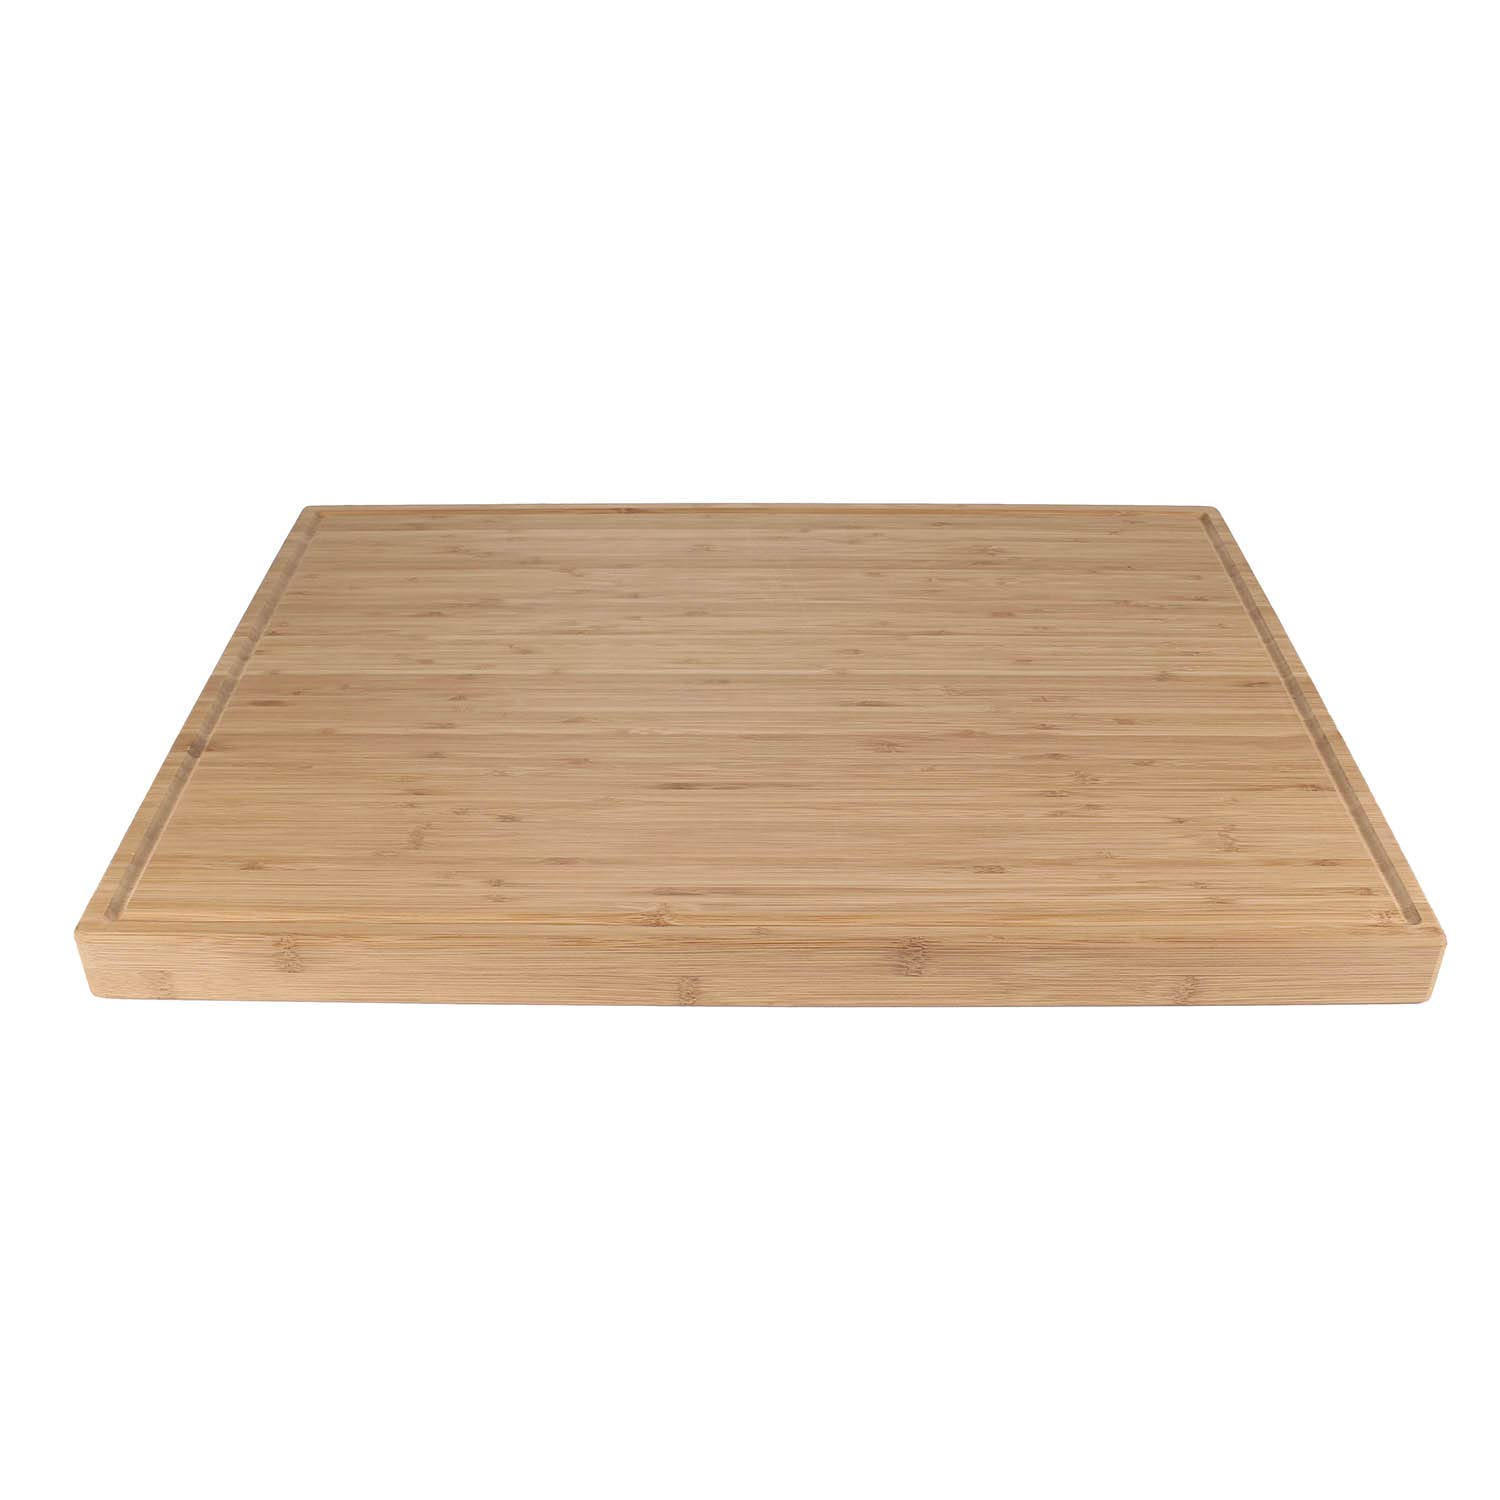 BambooMN Brand - Heavy Duty Premium Bamboo Cutting Board - 24'' x 18'' x 1.5'' (Grooved)